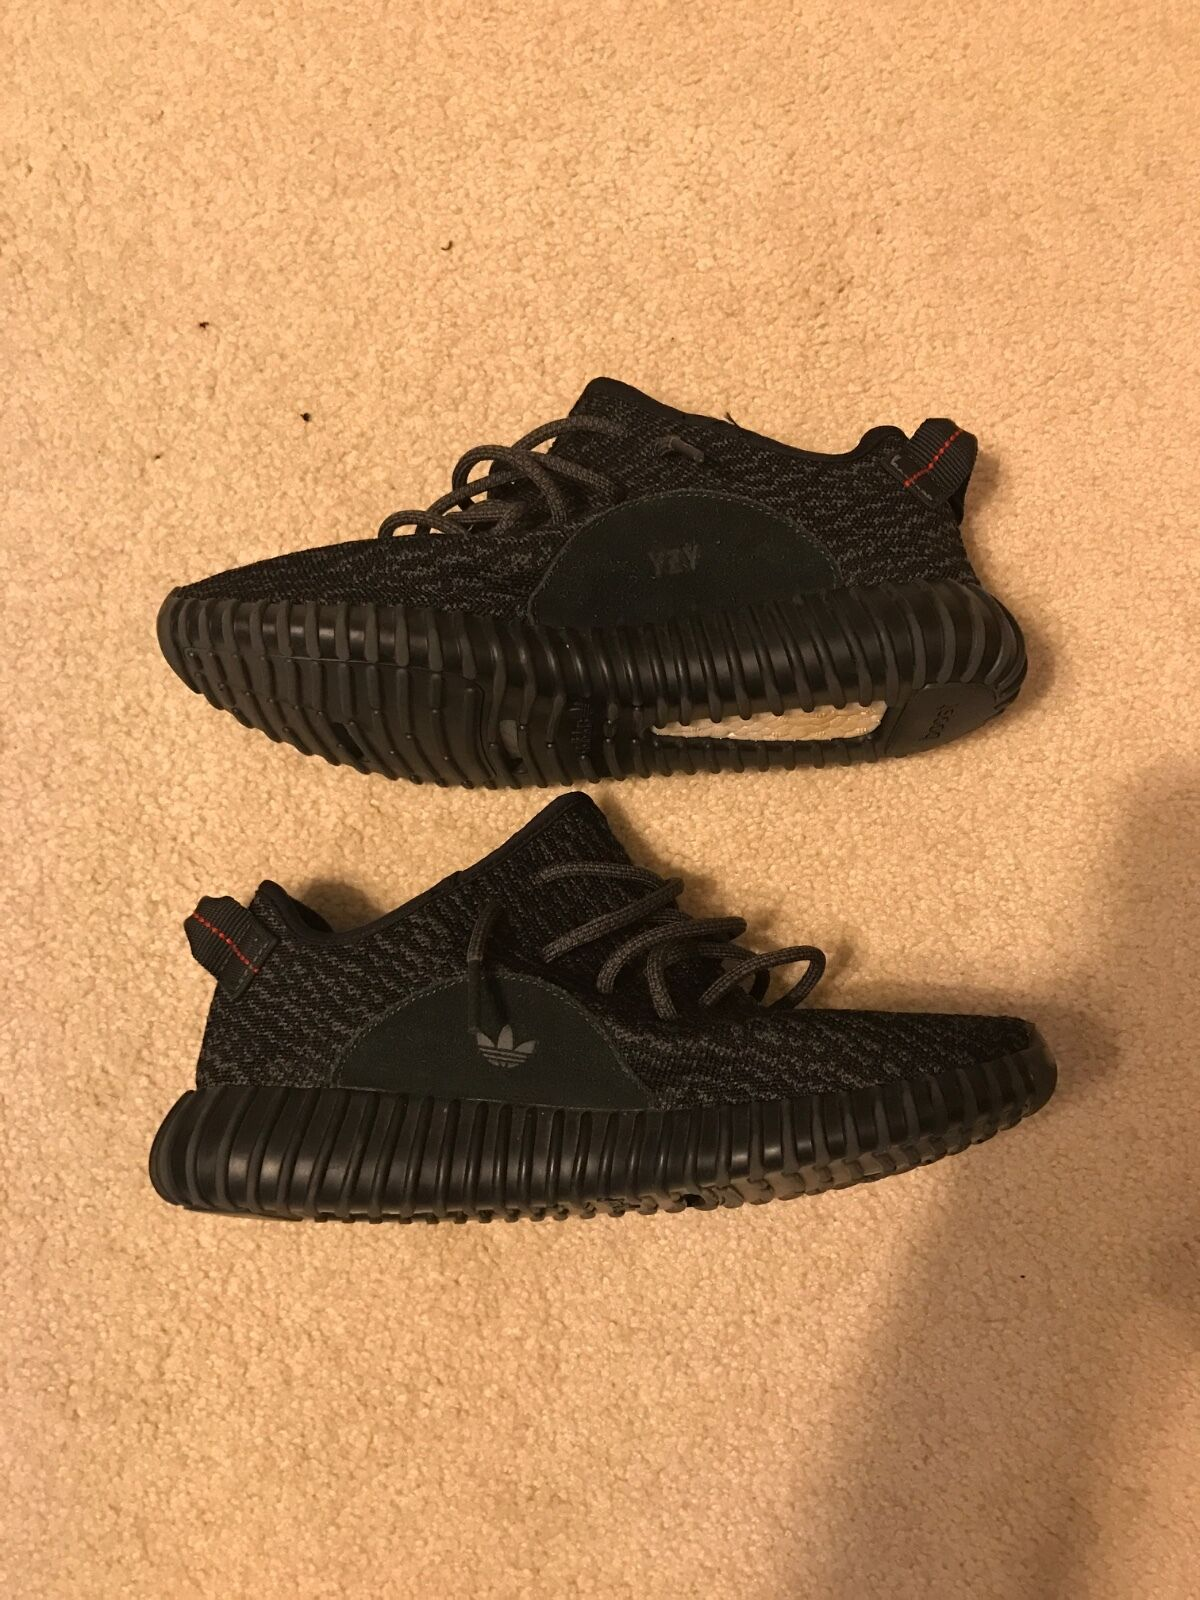 2015 Mens yeezy pirate black size 8.5 used in good condition with box